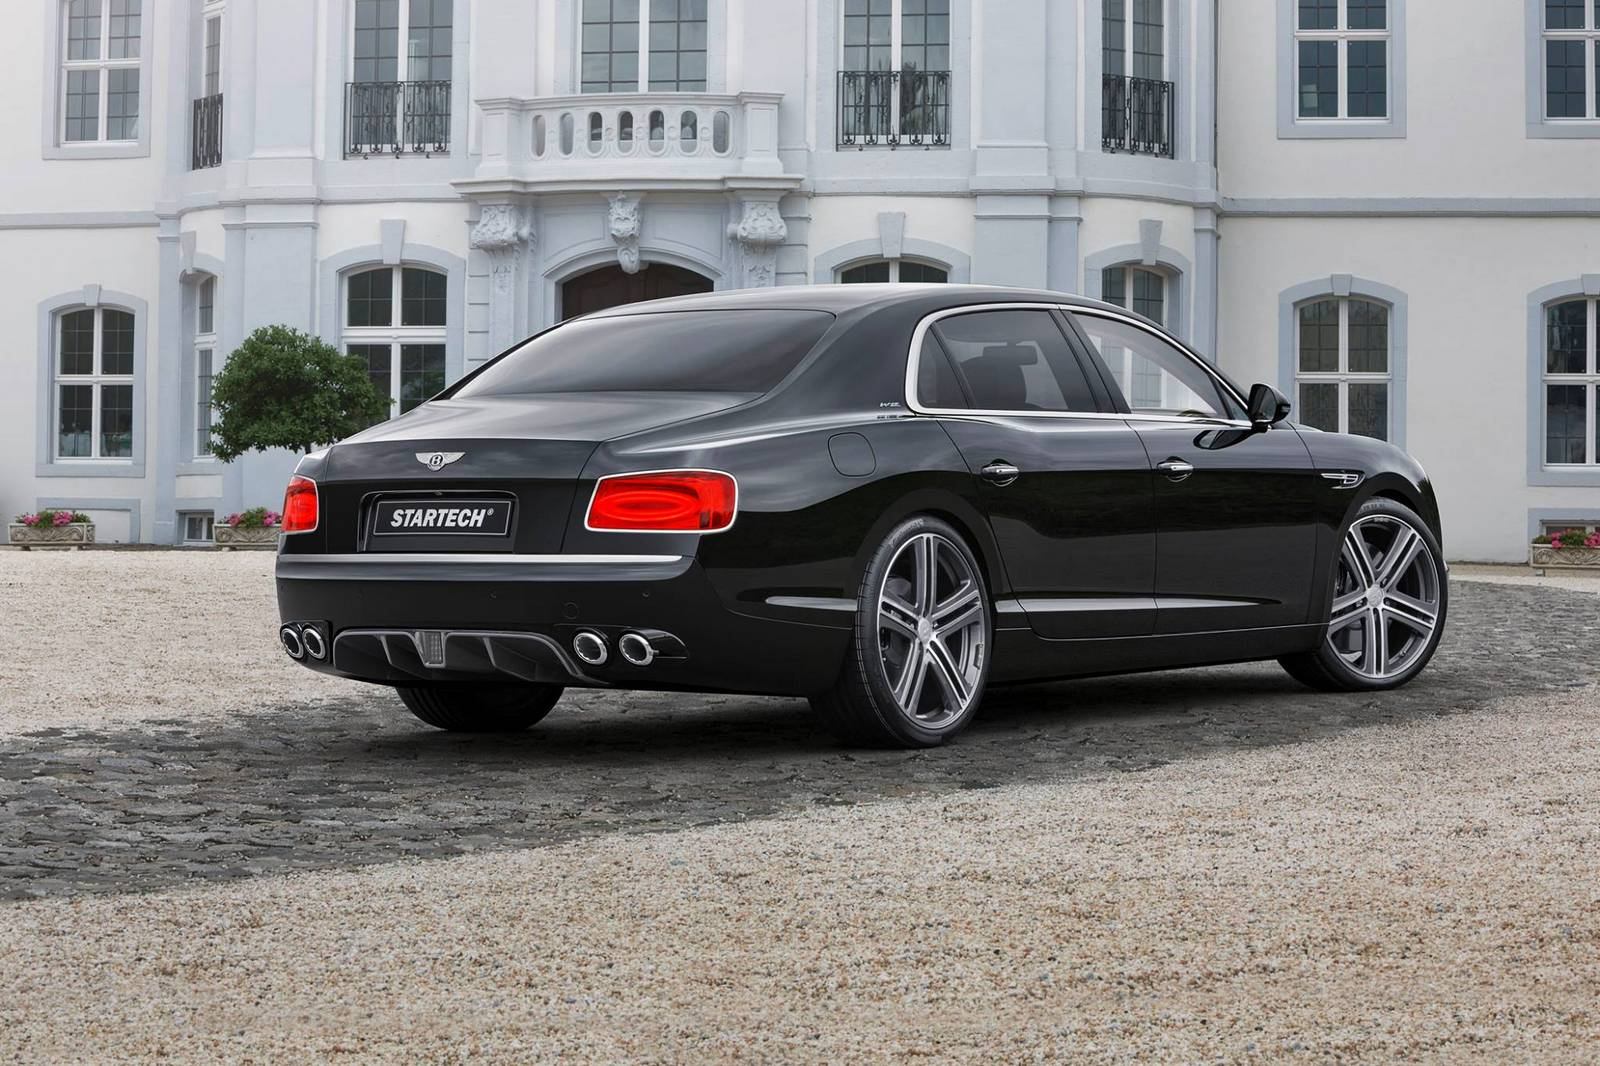 Official: Startech Bentley Flying Spur